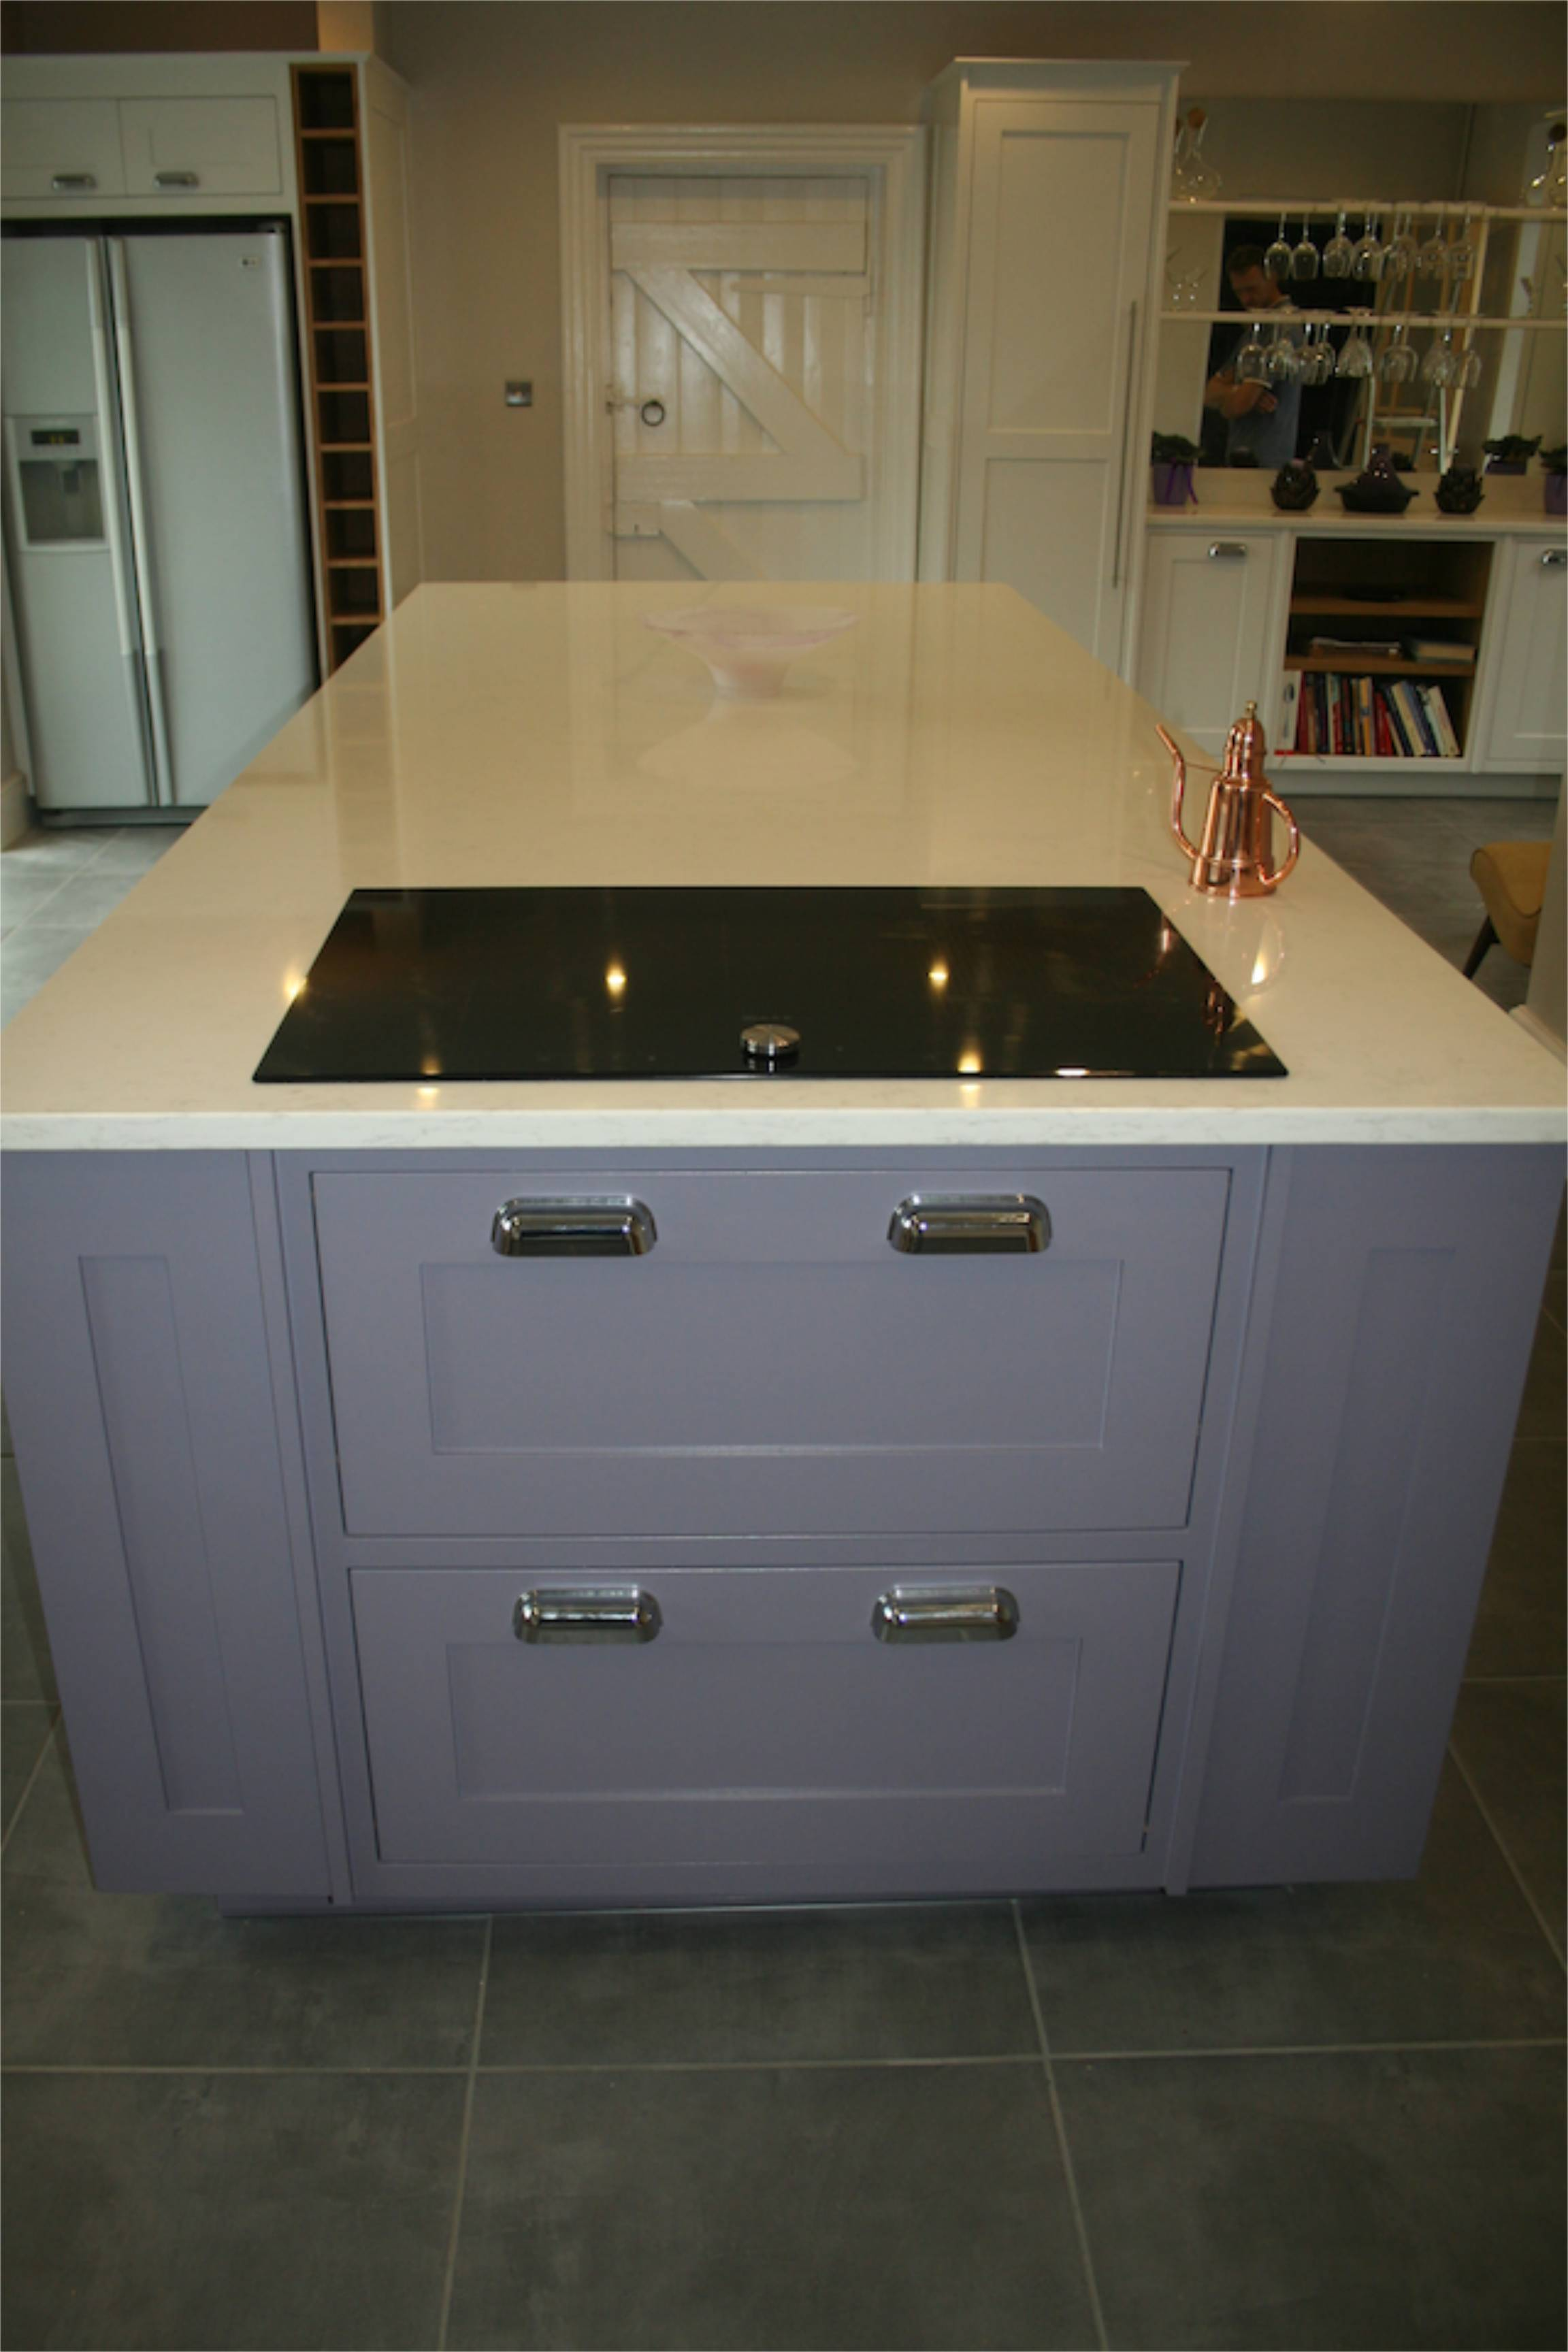 Integrated induction hob with purpose made, bespoke pot drawers